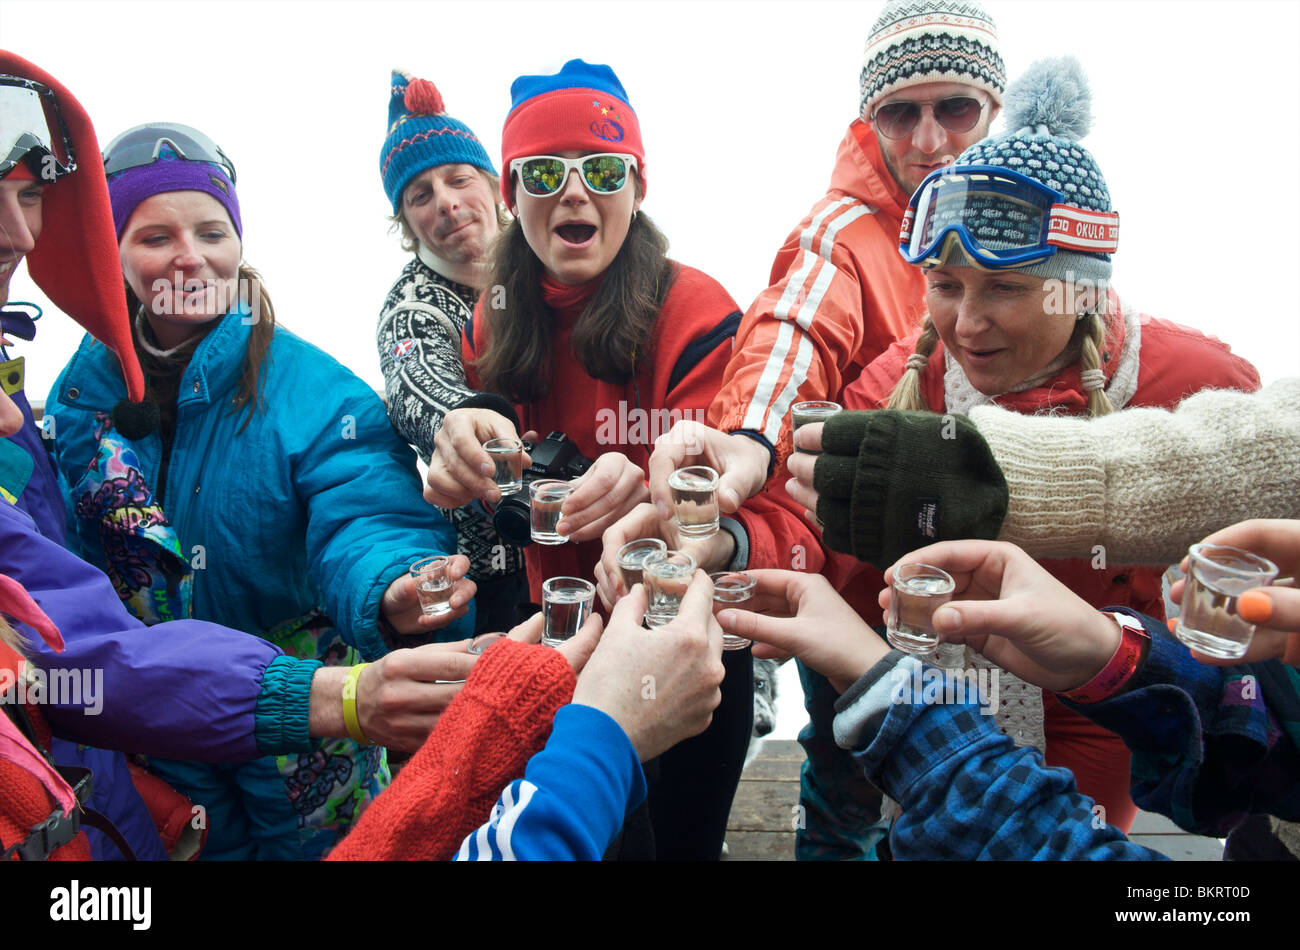 Slovakia, Jasna, group of instructors dressed up to the eighties celebrating the end of the season Stock Photo